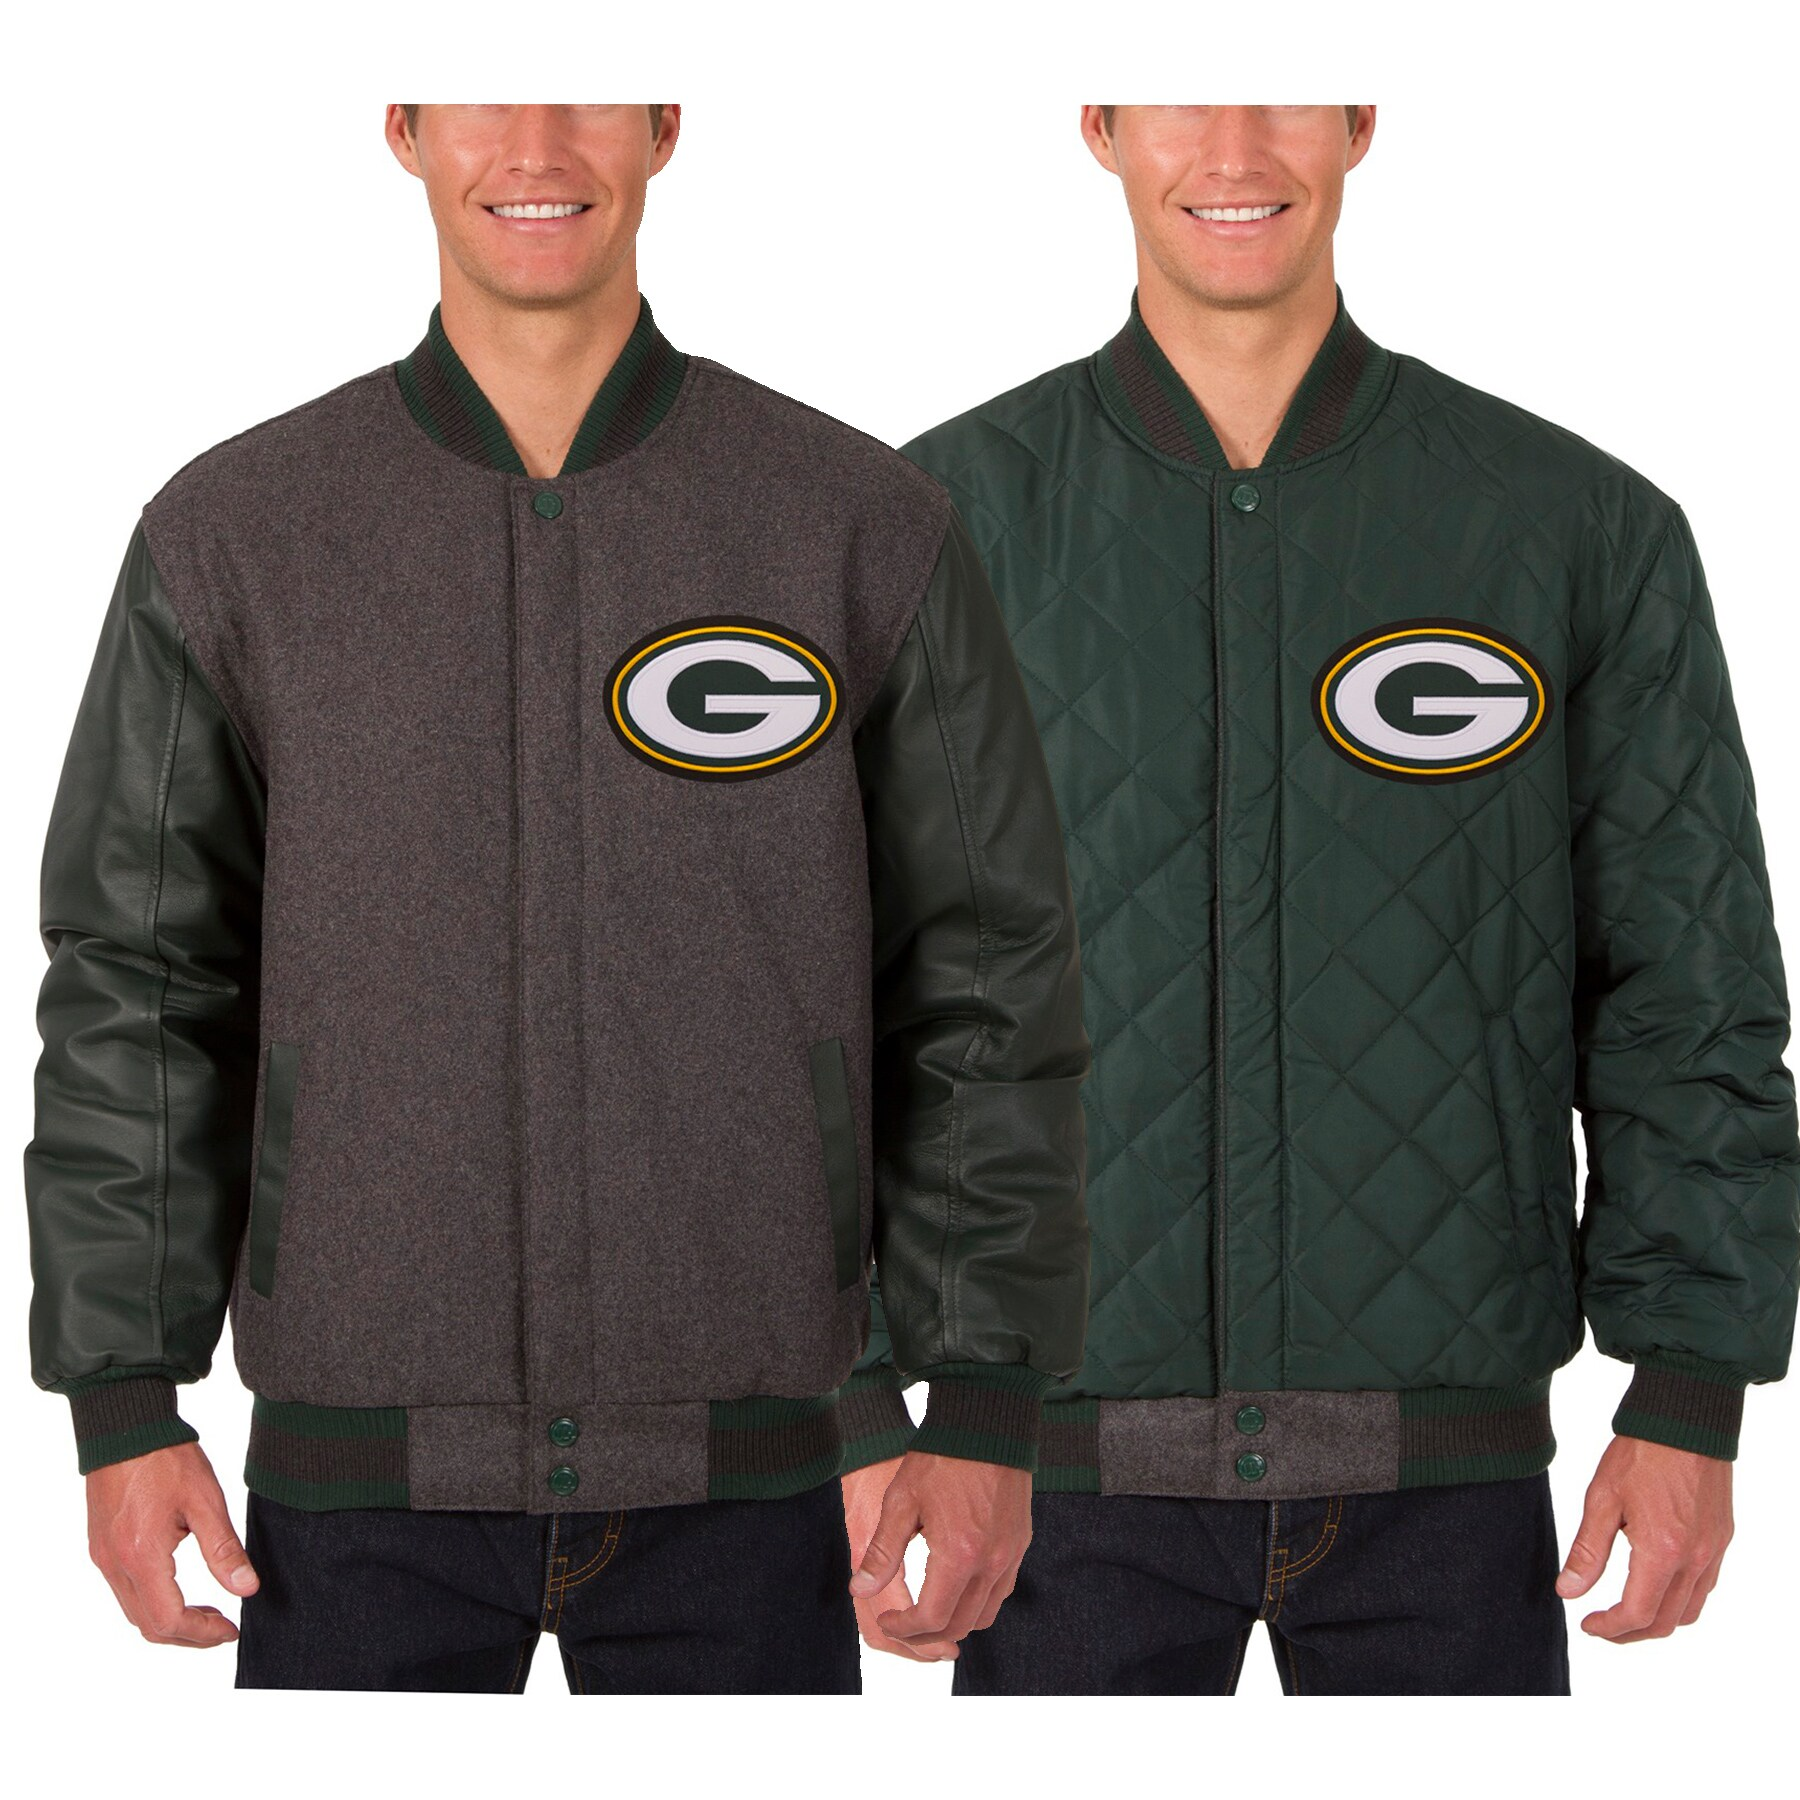 Green Bay Packers JH Design Wool & Leather Reversible Jacket with Embroidered Logos - Black